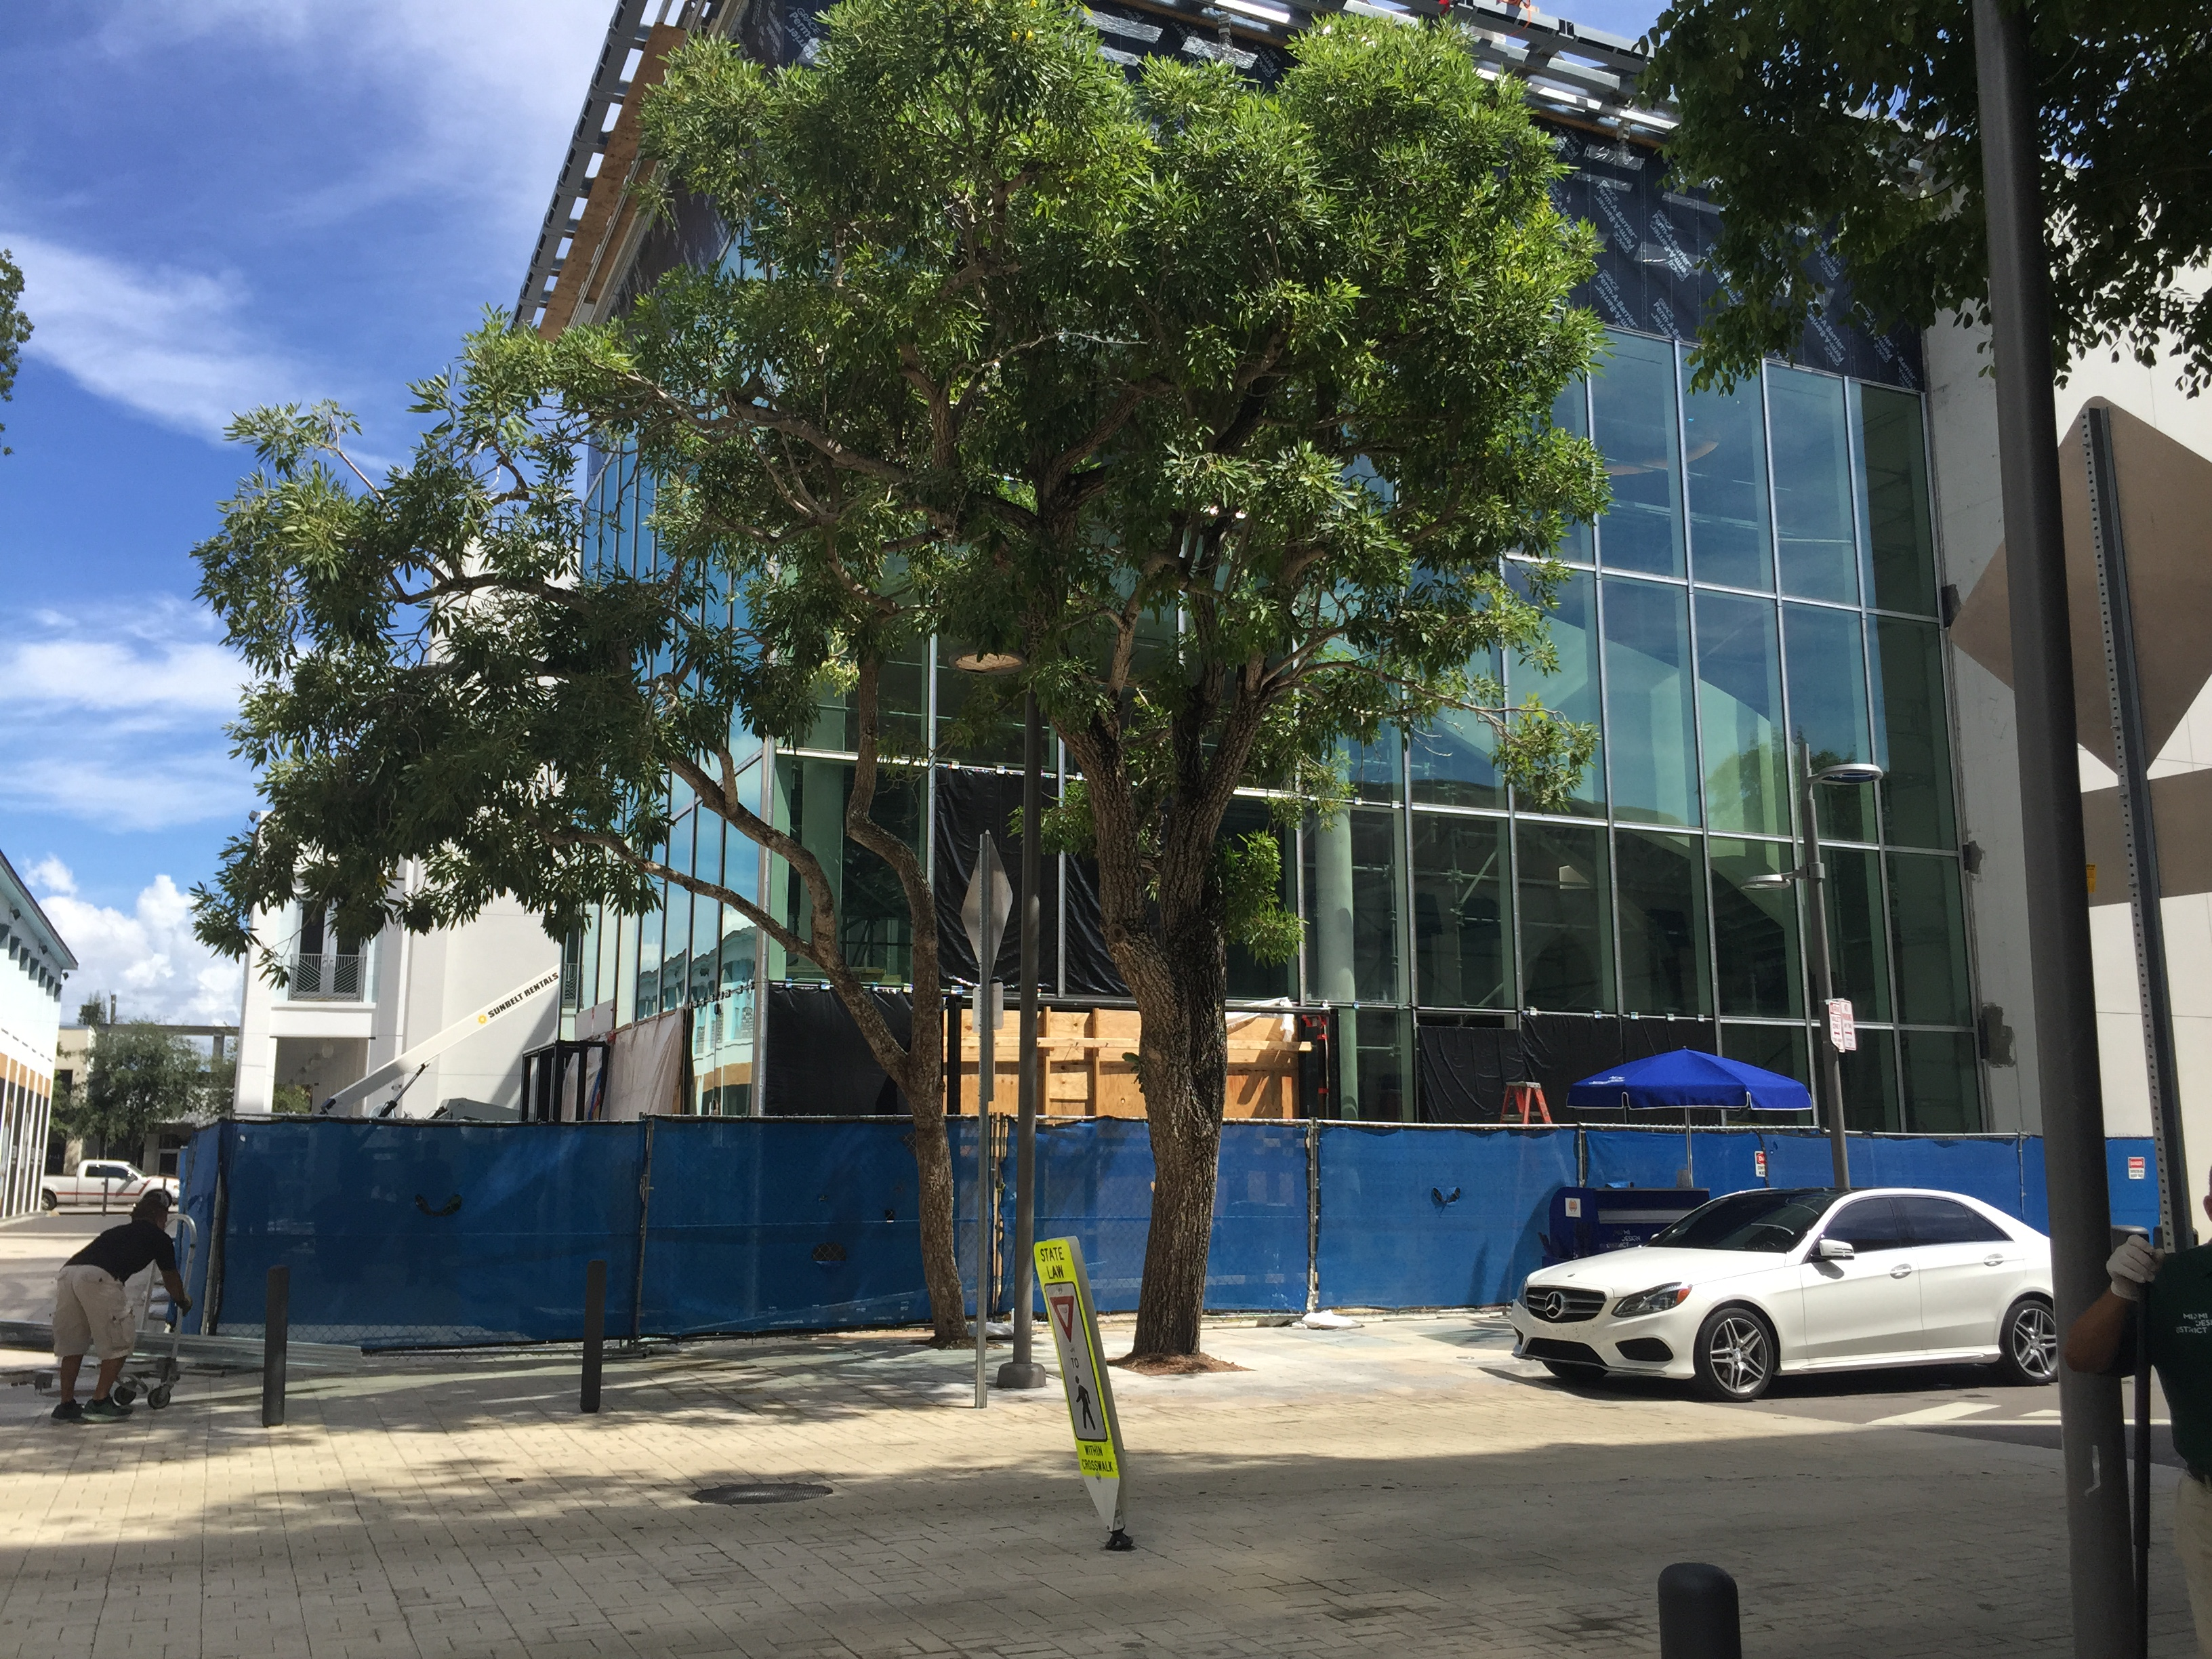 The future Hermés store in the Design District